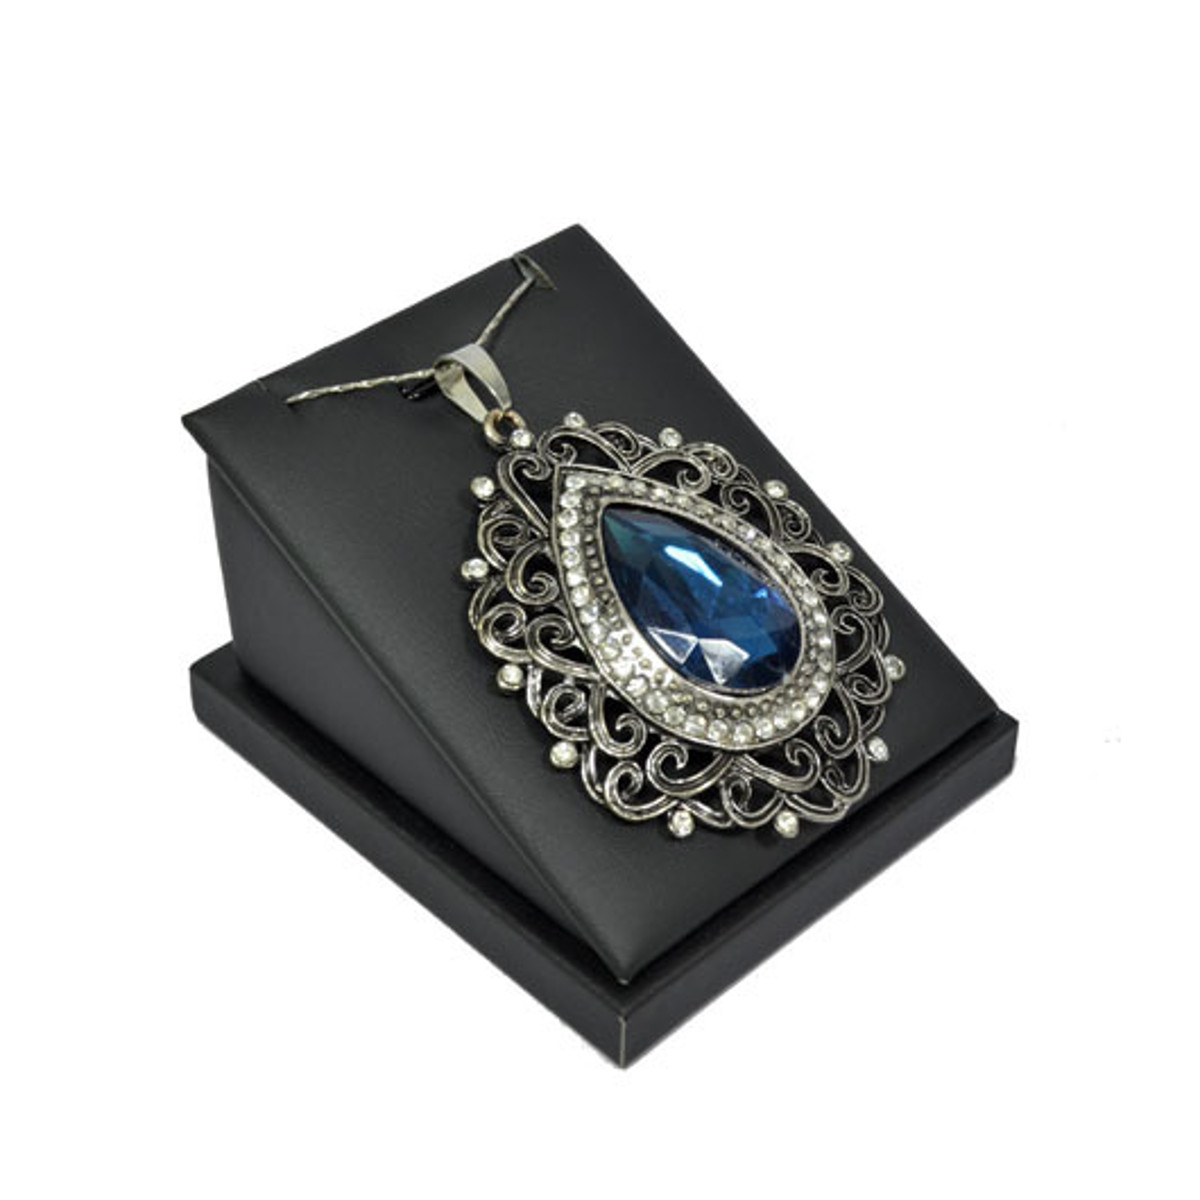 black pu necklace jewelry holders pendant display stand